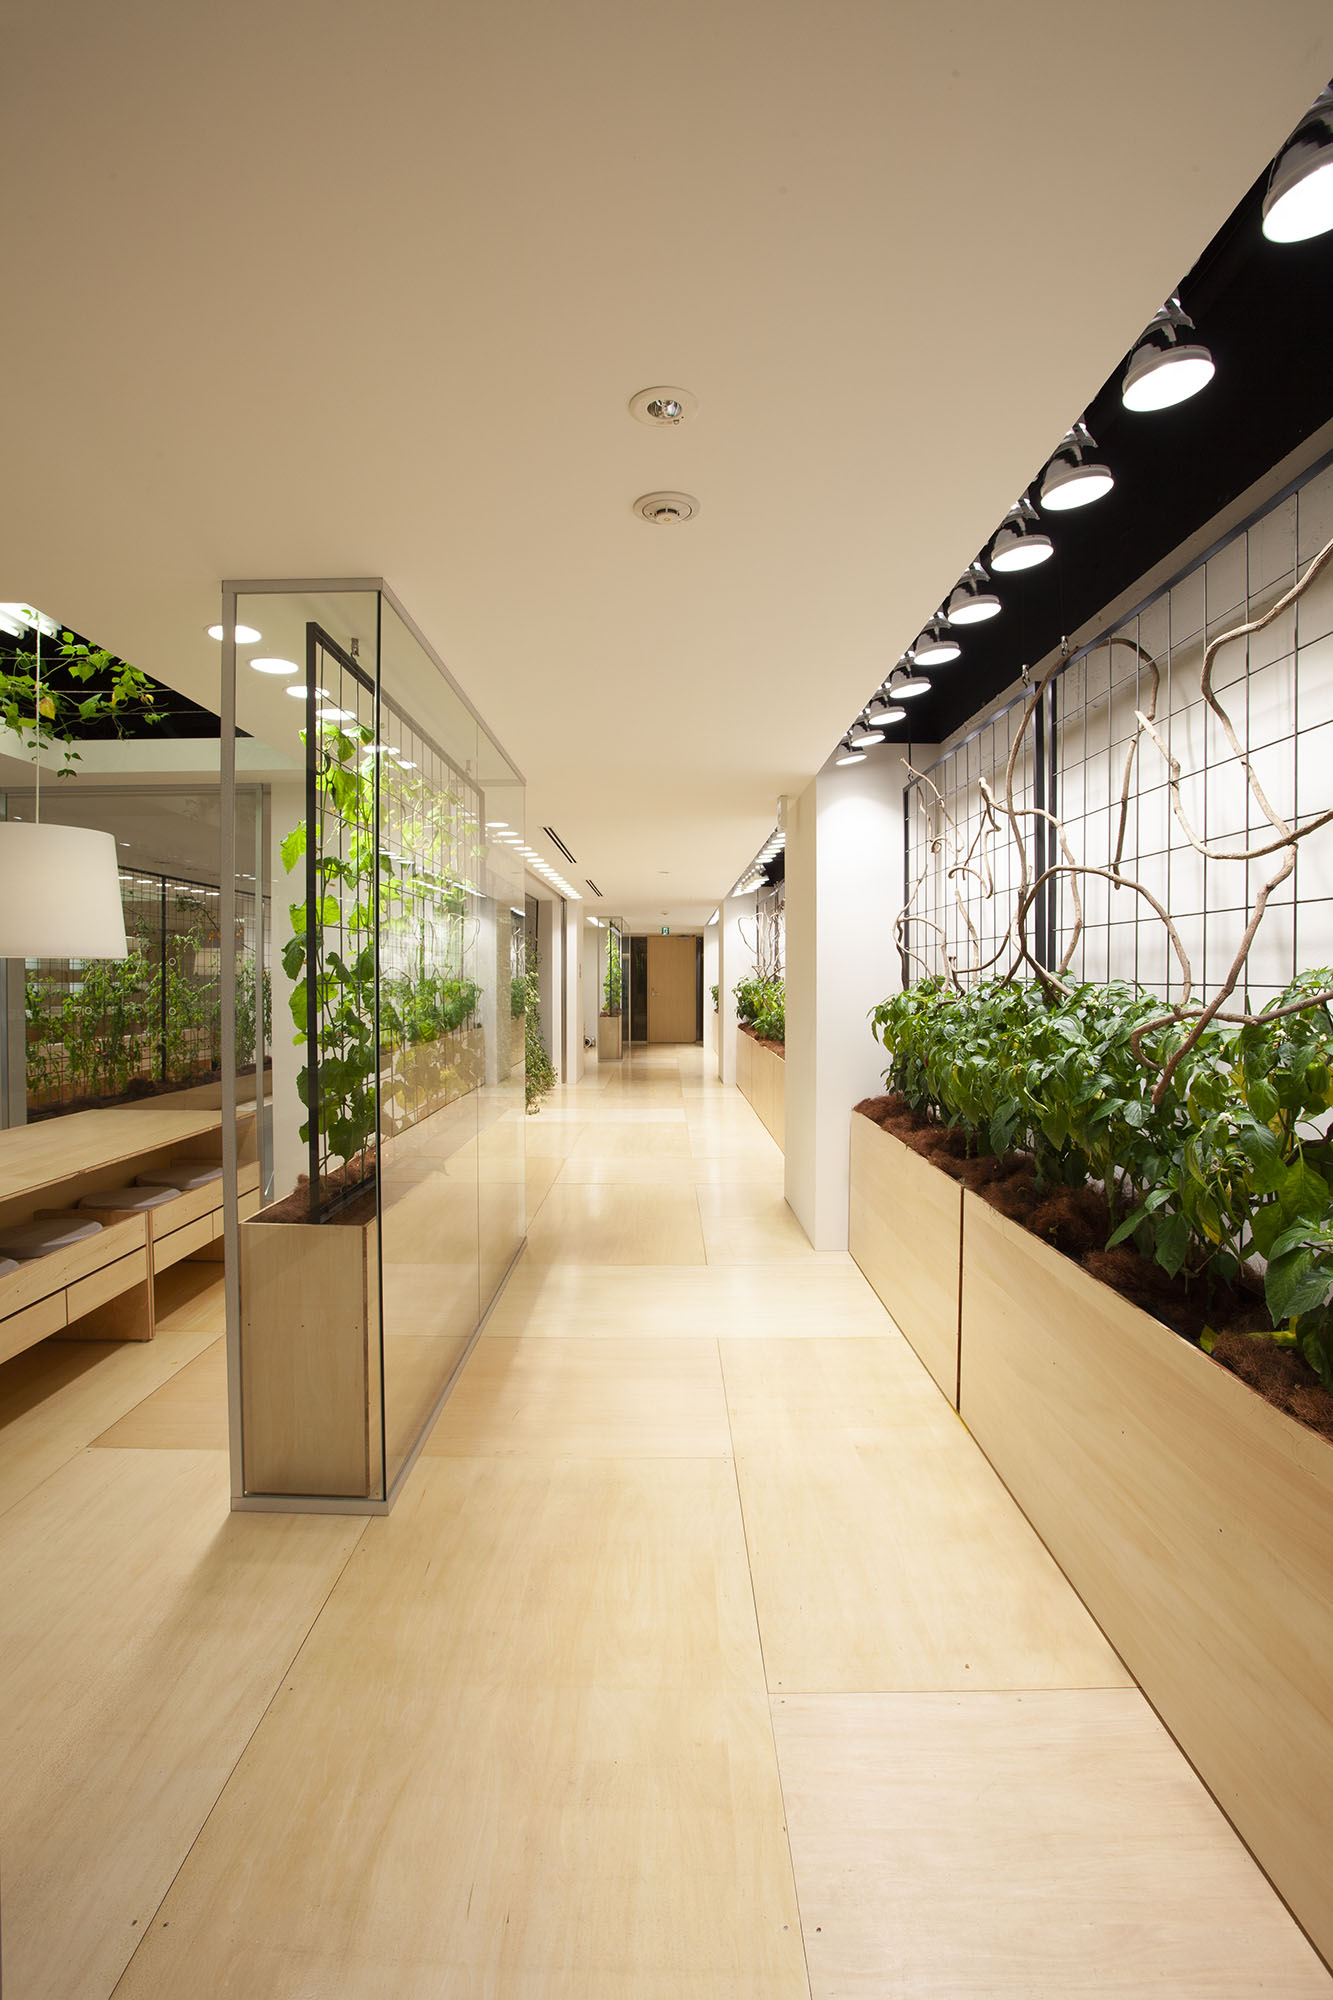 Pasona Urban Farm Konodesigns